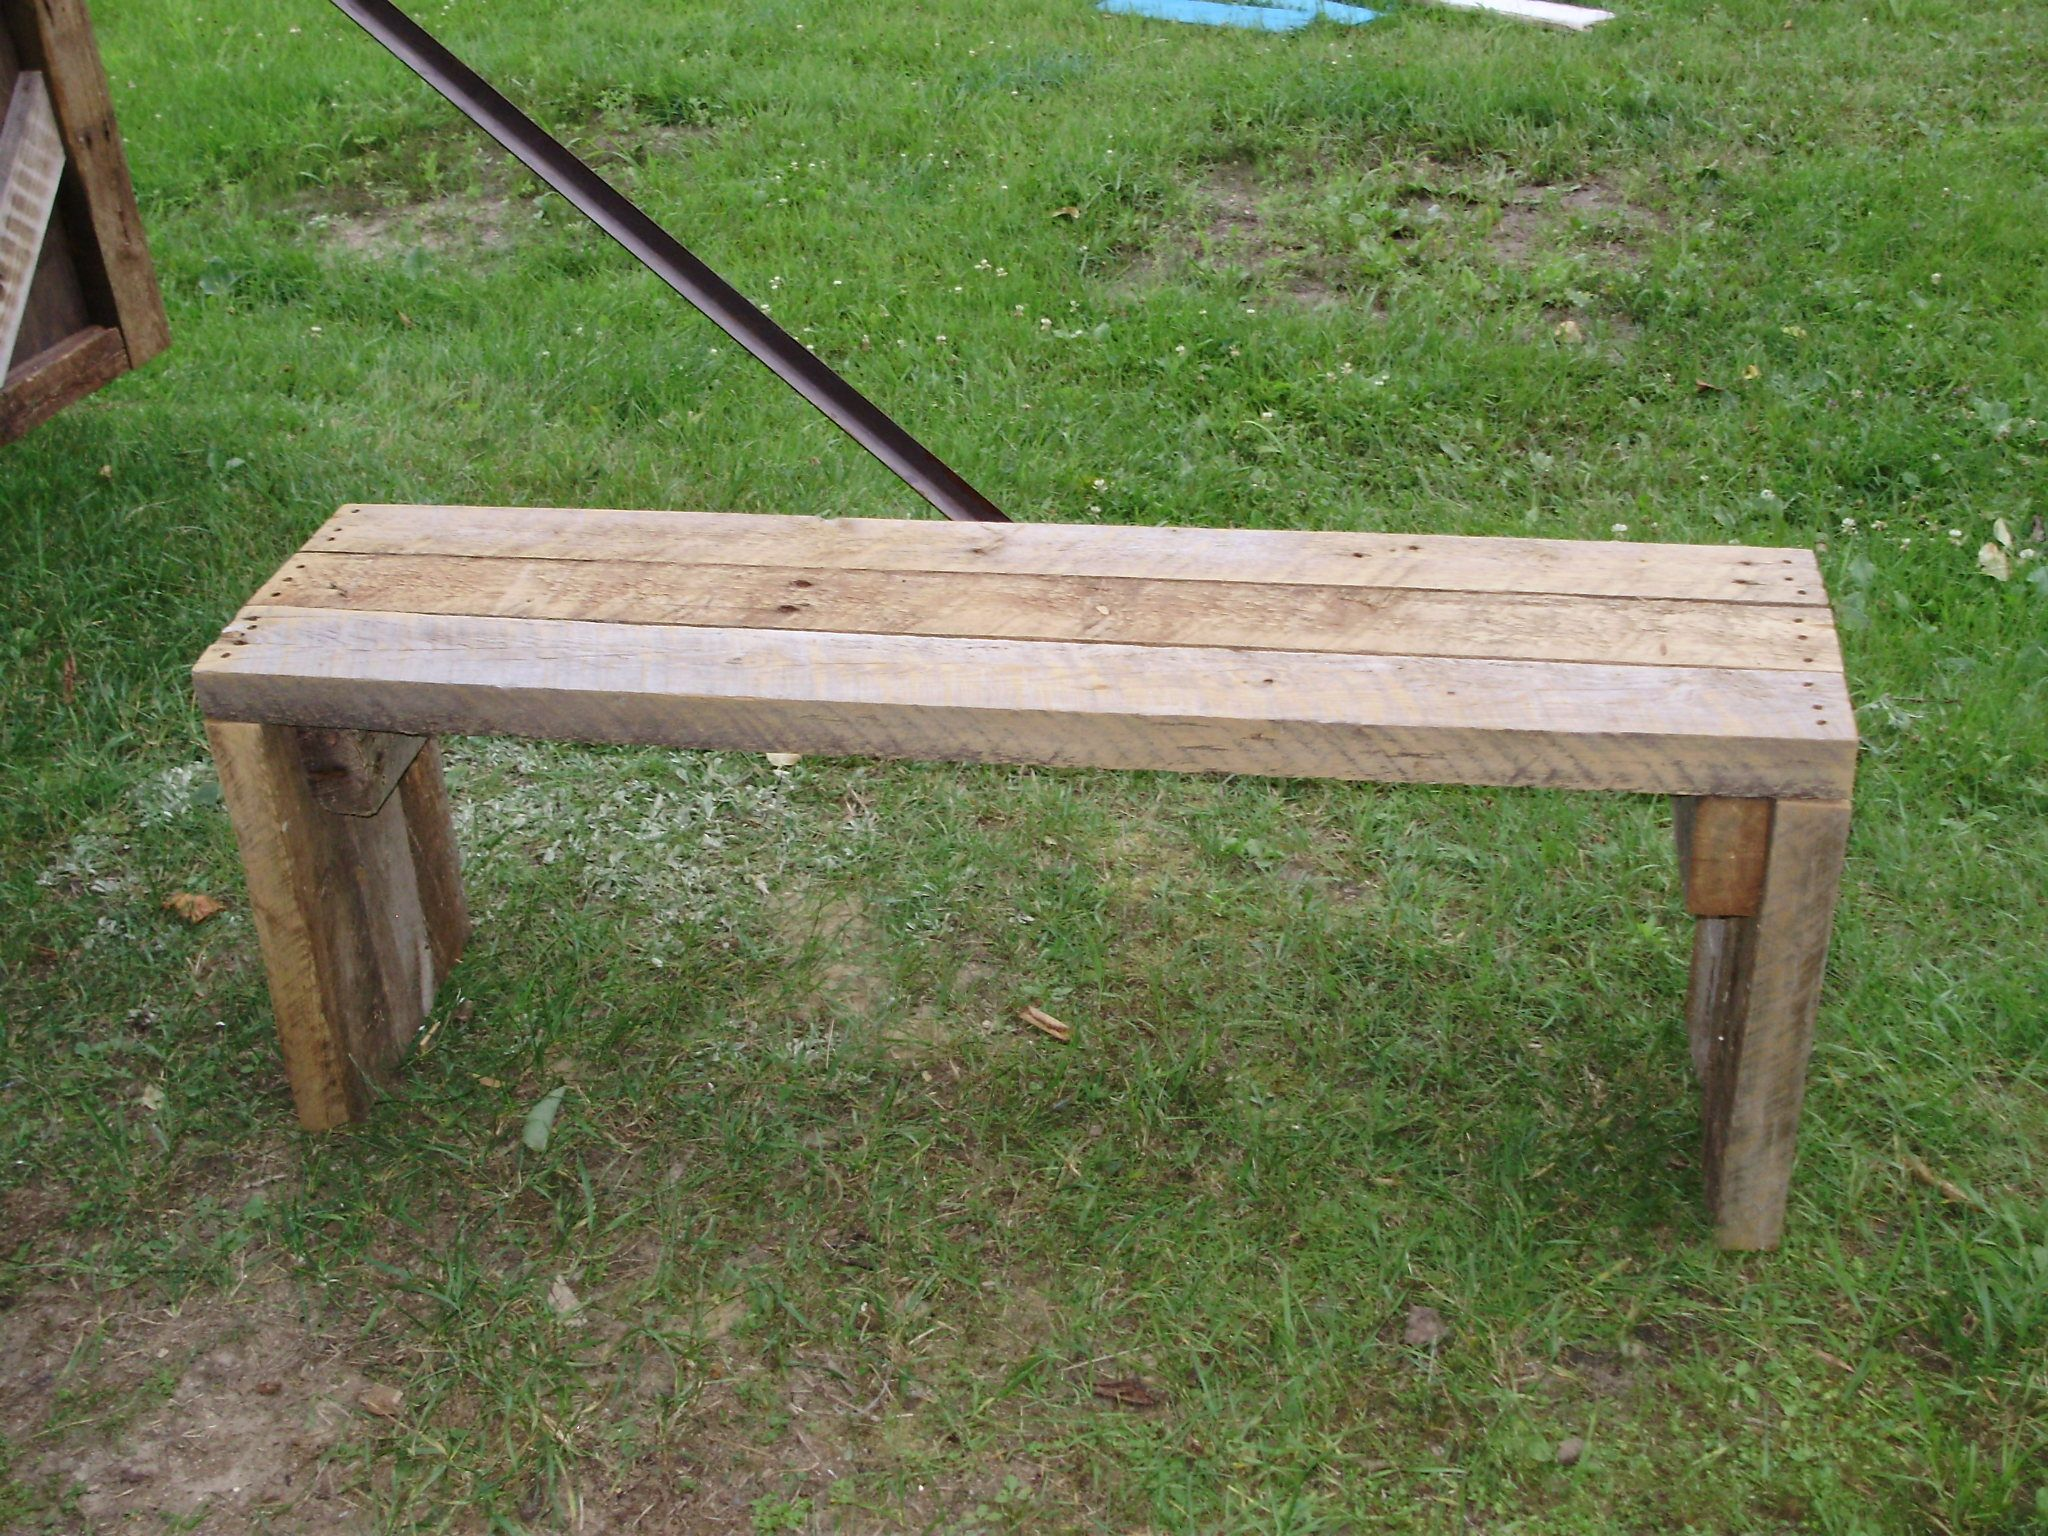 Groovy Bench Made From Rough Cut 2X4 From An Old Dairy Barn Dailytribune Chair Design For Home Dailytribuneorg